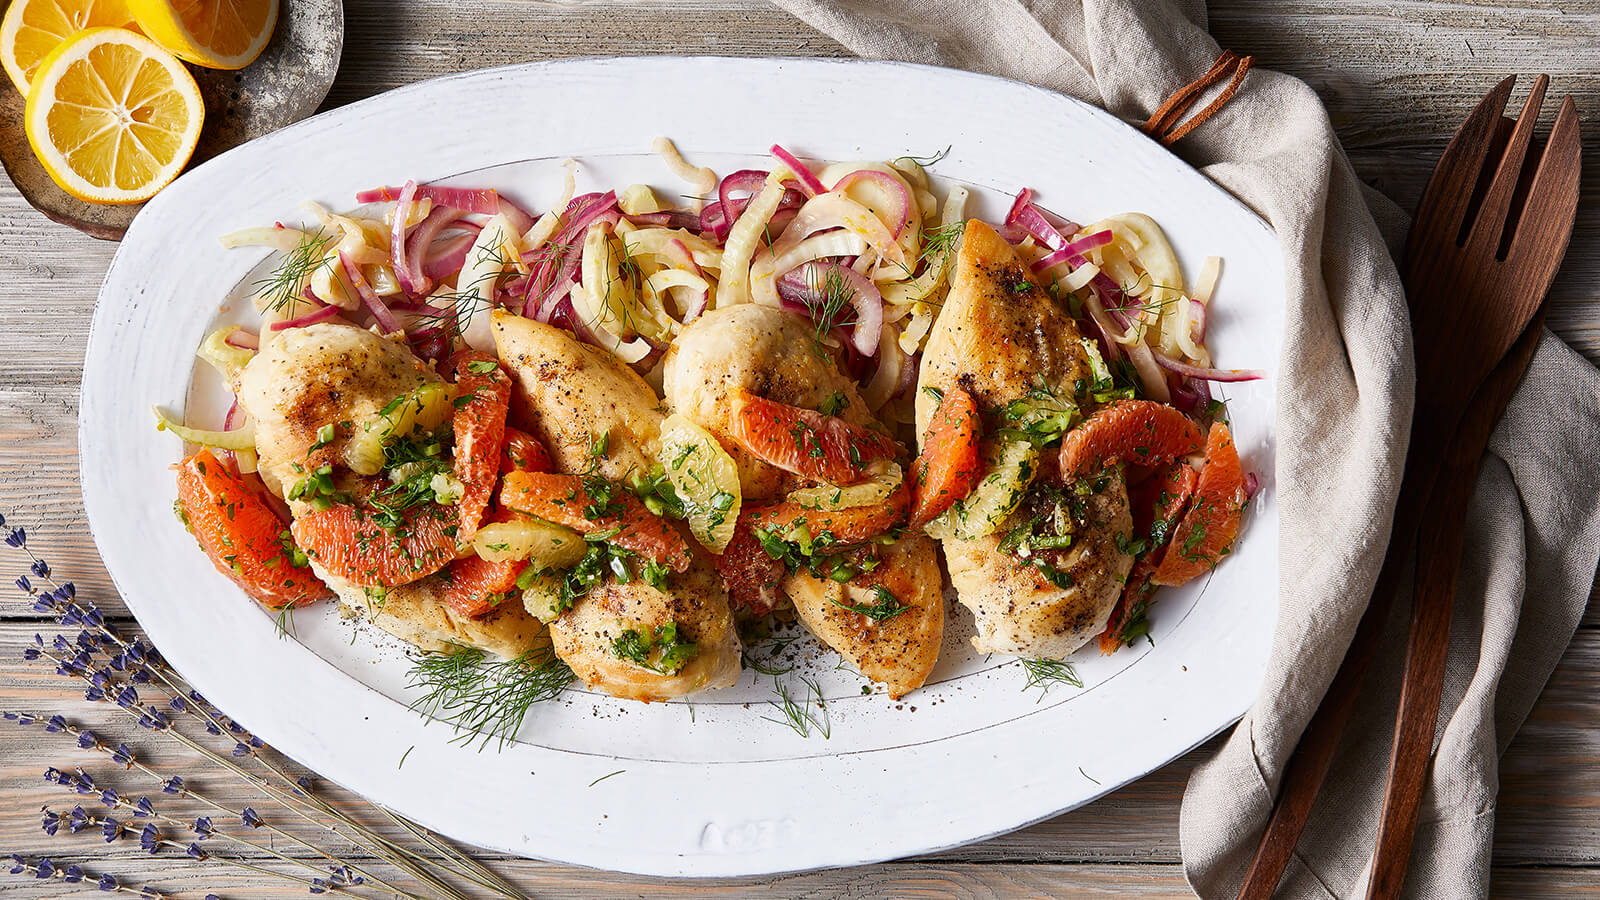 Braised Chicken Breasts with Fennel and Winter Citrus Salsa